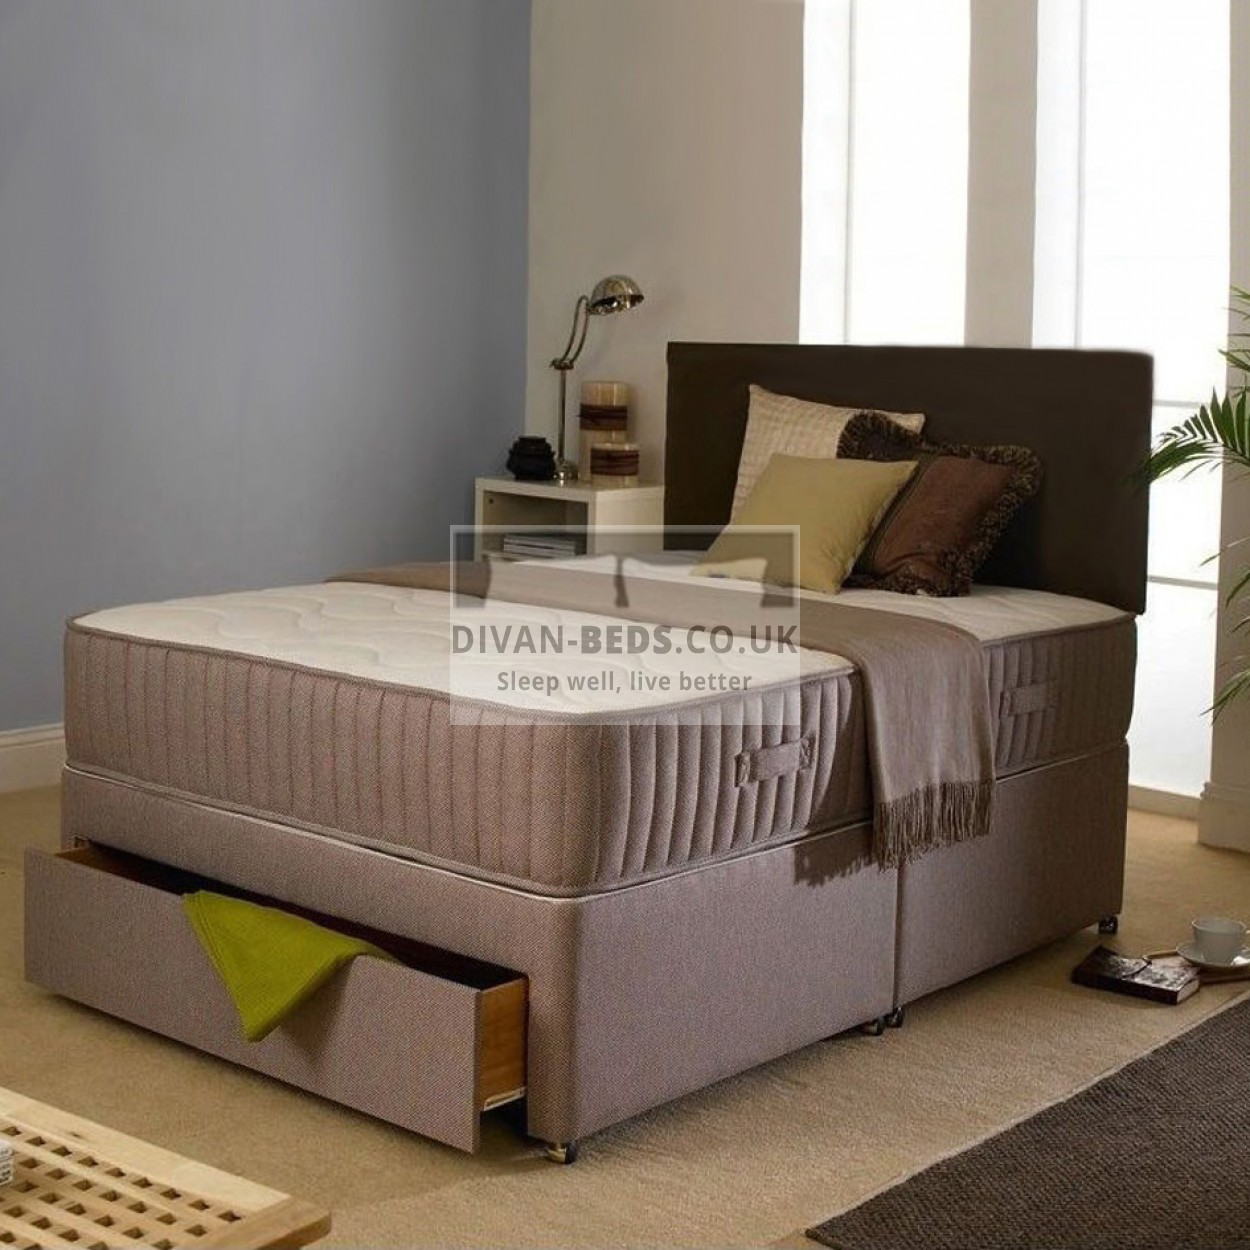 Malcolm divan bed with orthopaedic spring mattress for Orthopedic divan beds